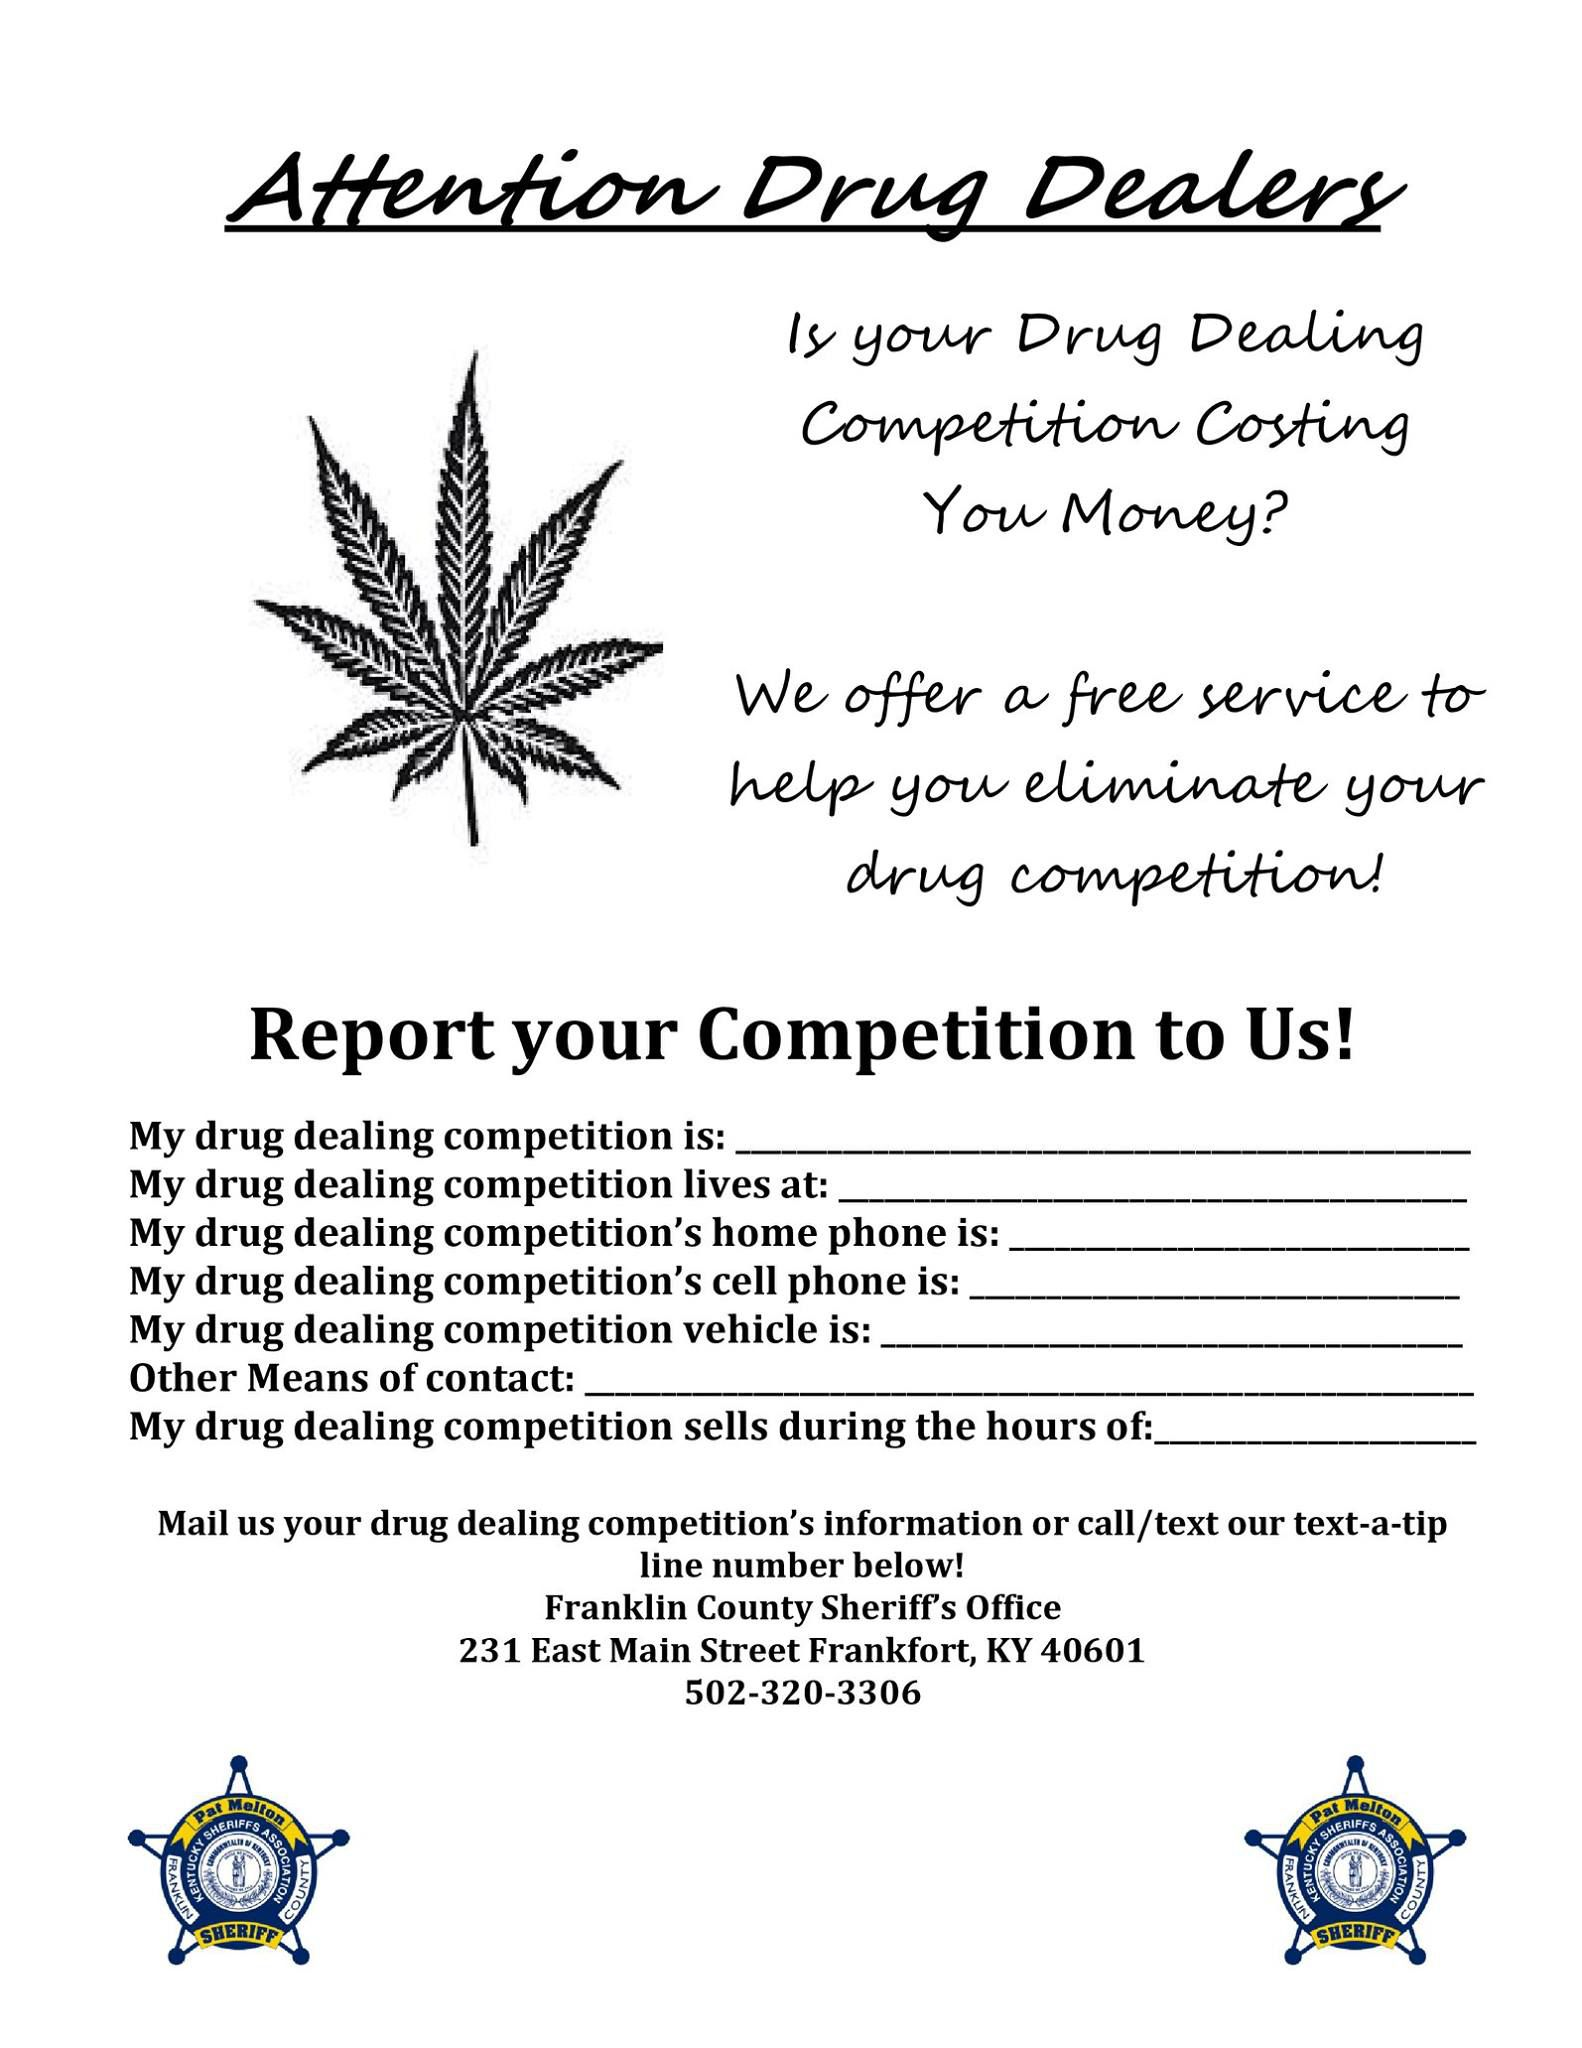 A form that lets drug dealers snitch on their competition.